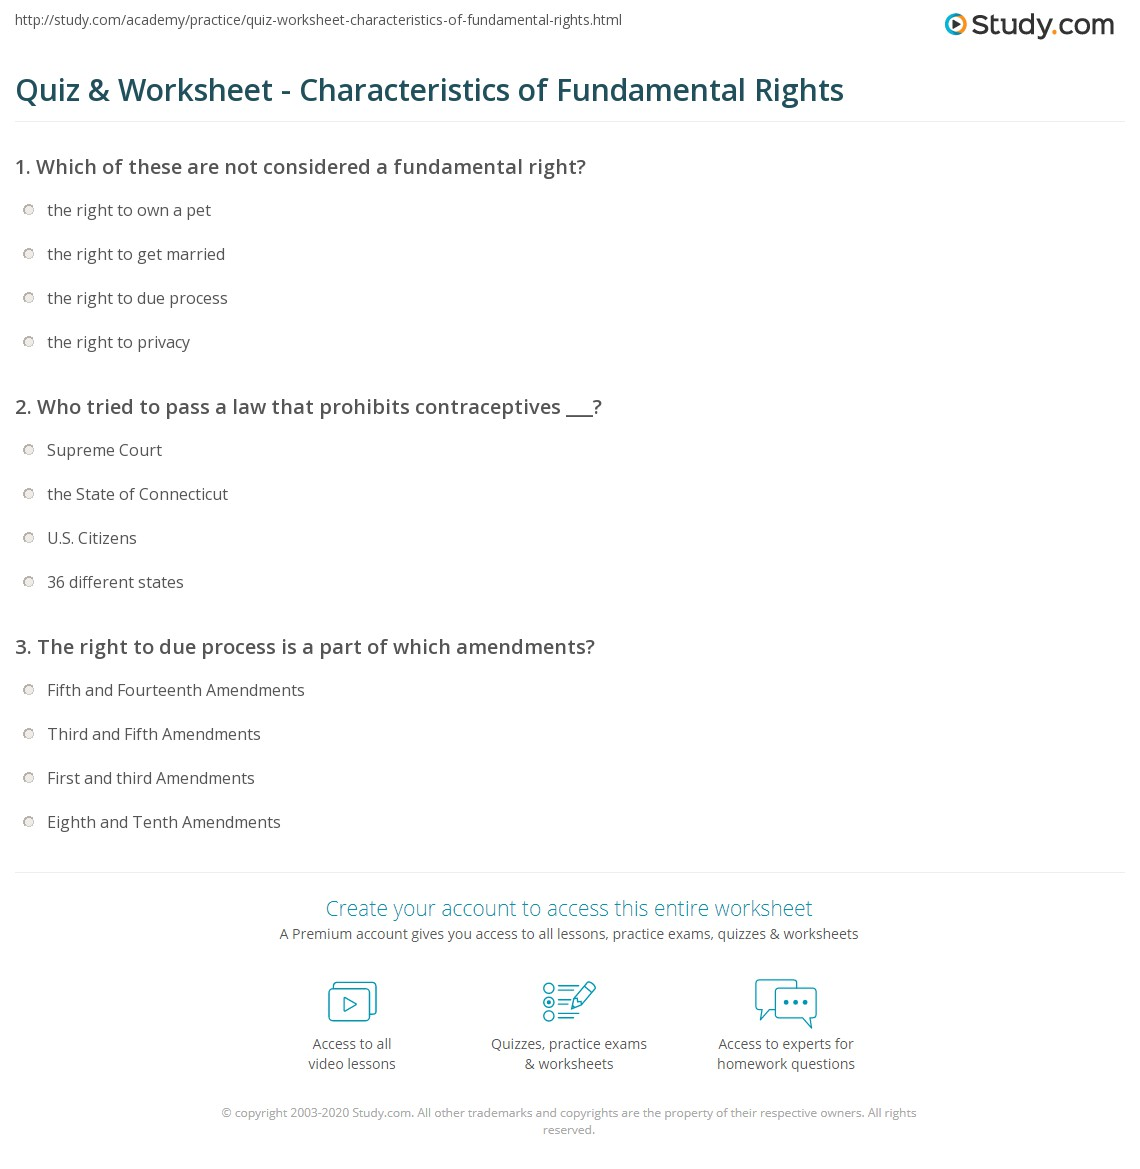 Aldiablosus  Outstanding Quiz Amp Worksheet  Characteristics Of Fundamental Rights  Studycom With Engaging Print What Are Fundamental Rights  Definition Types Amp Features Worksheet With Beauteous Numbers To Words Worksheet Also Antonyms Worksheets For Third Grade In Addition Percentage To Fraction Worksheet And Printable Missing Number Worksheets As Well As Worksheet For Letter H Additionally Matrices And Determinants Worksheets From Studycom With Aldiablosus  Engaging Quiz Amp Worksheet  Characteristics Of Fundamental Rights  Studycom With Beauteous Print What Are Fundamental Rights  Definition Types Amp Features Worksheet And Outstanding Numbers To Words Worksheet Also Antonyms Worksheets For Third Grade In Addition Percentage To Fraction Worksheet From Studycom